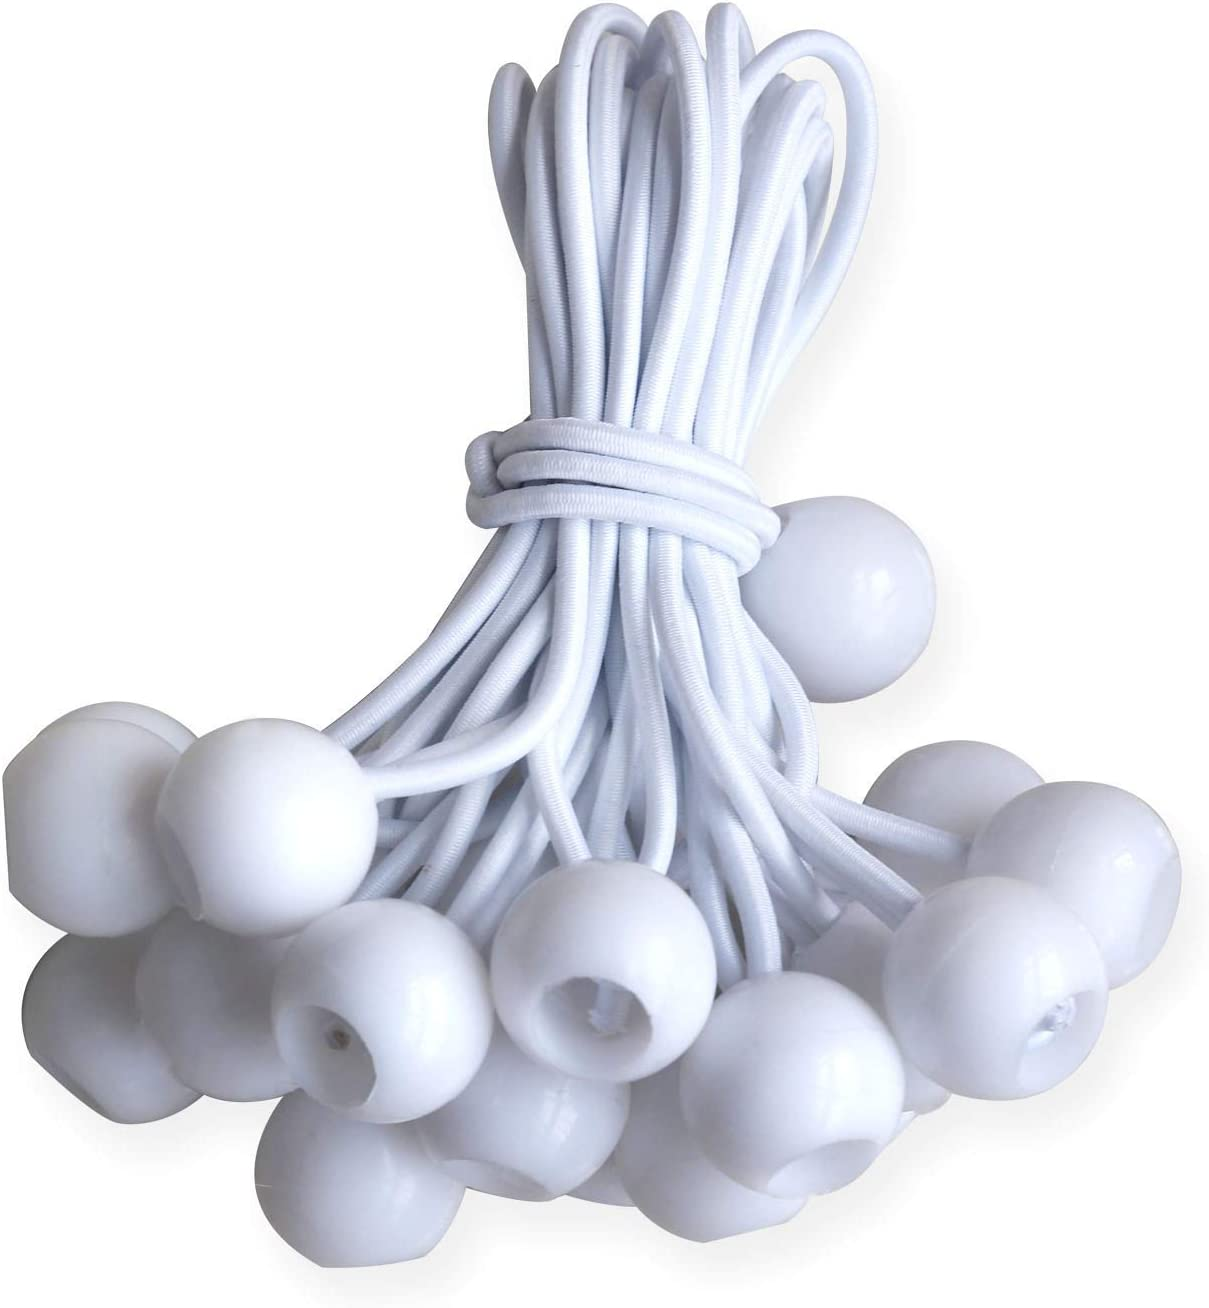 White 30pcs, 6 ABCCANOPY Heavy Duty Ball Bungee Canopy Tarp Tie Down Cord Elastic String Ball Bungee tarp Ball Ties